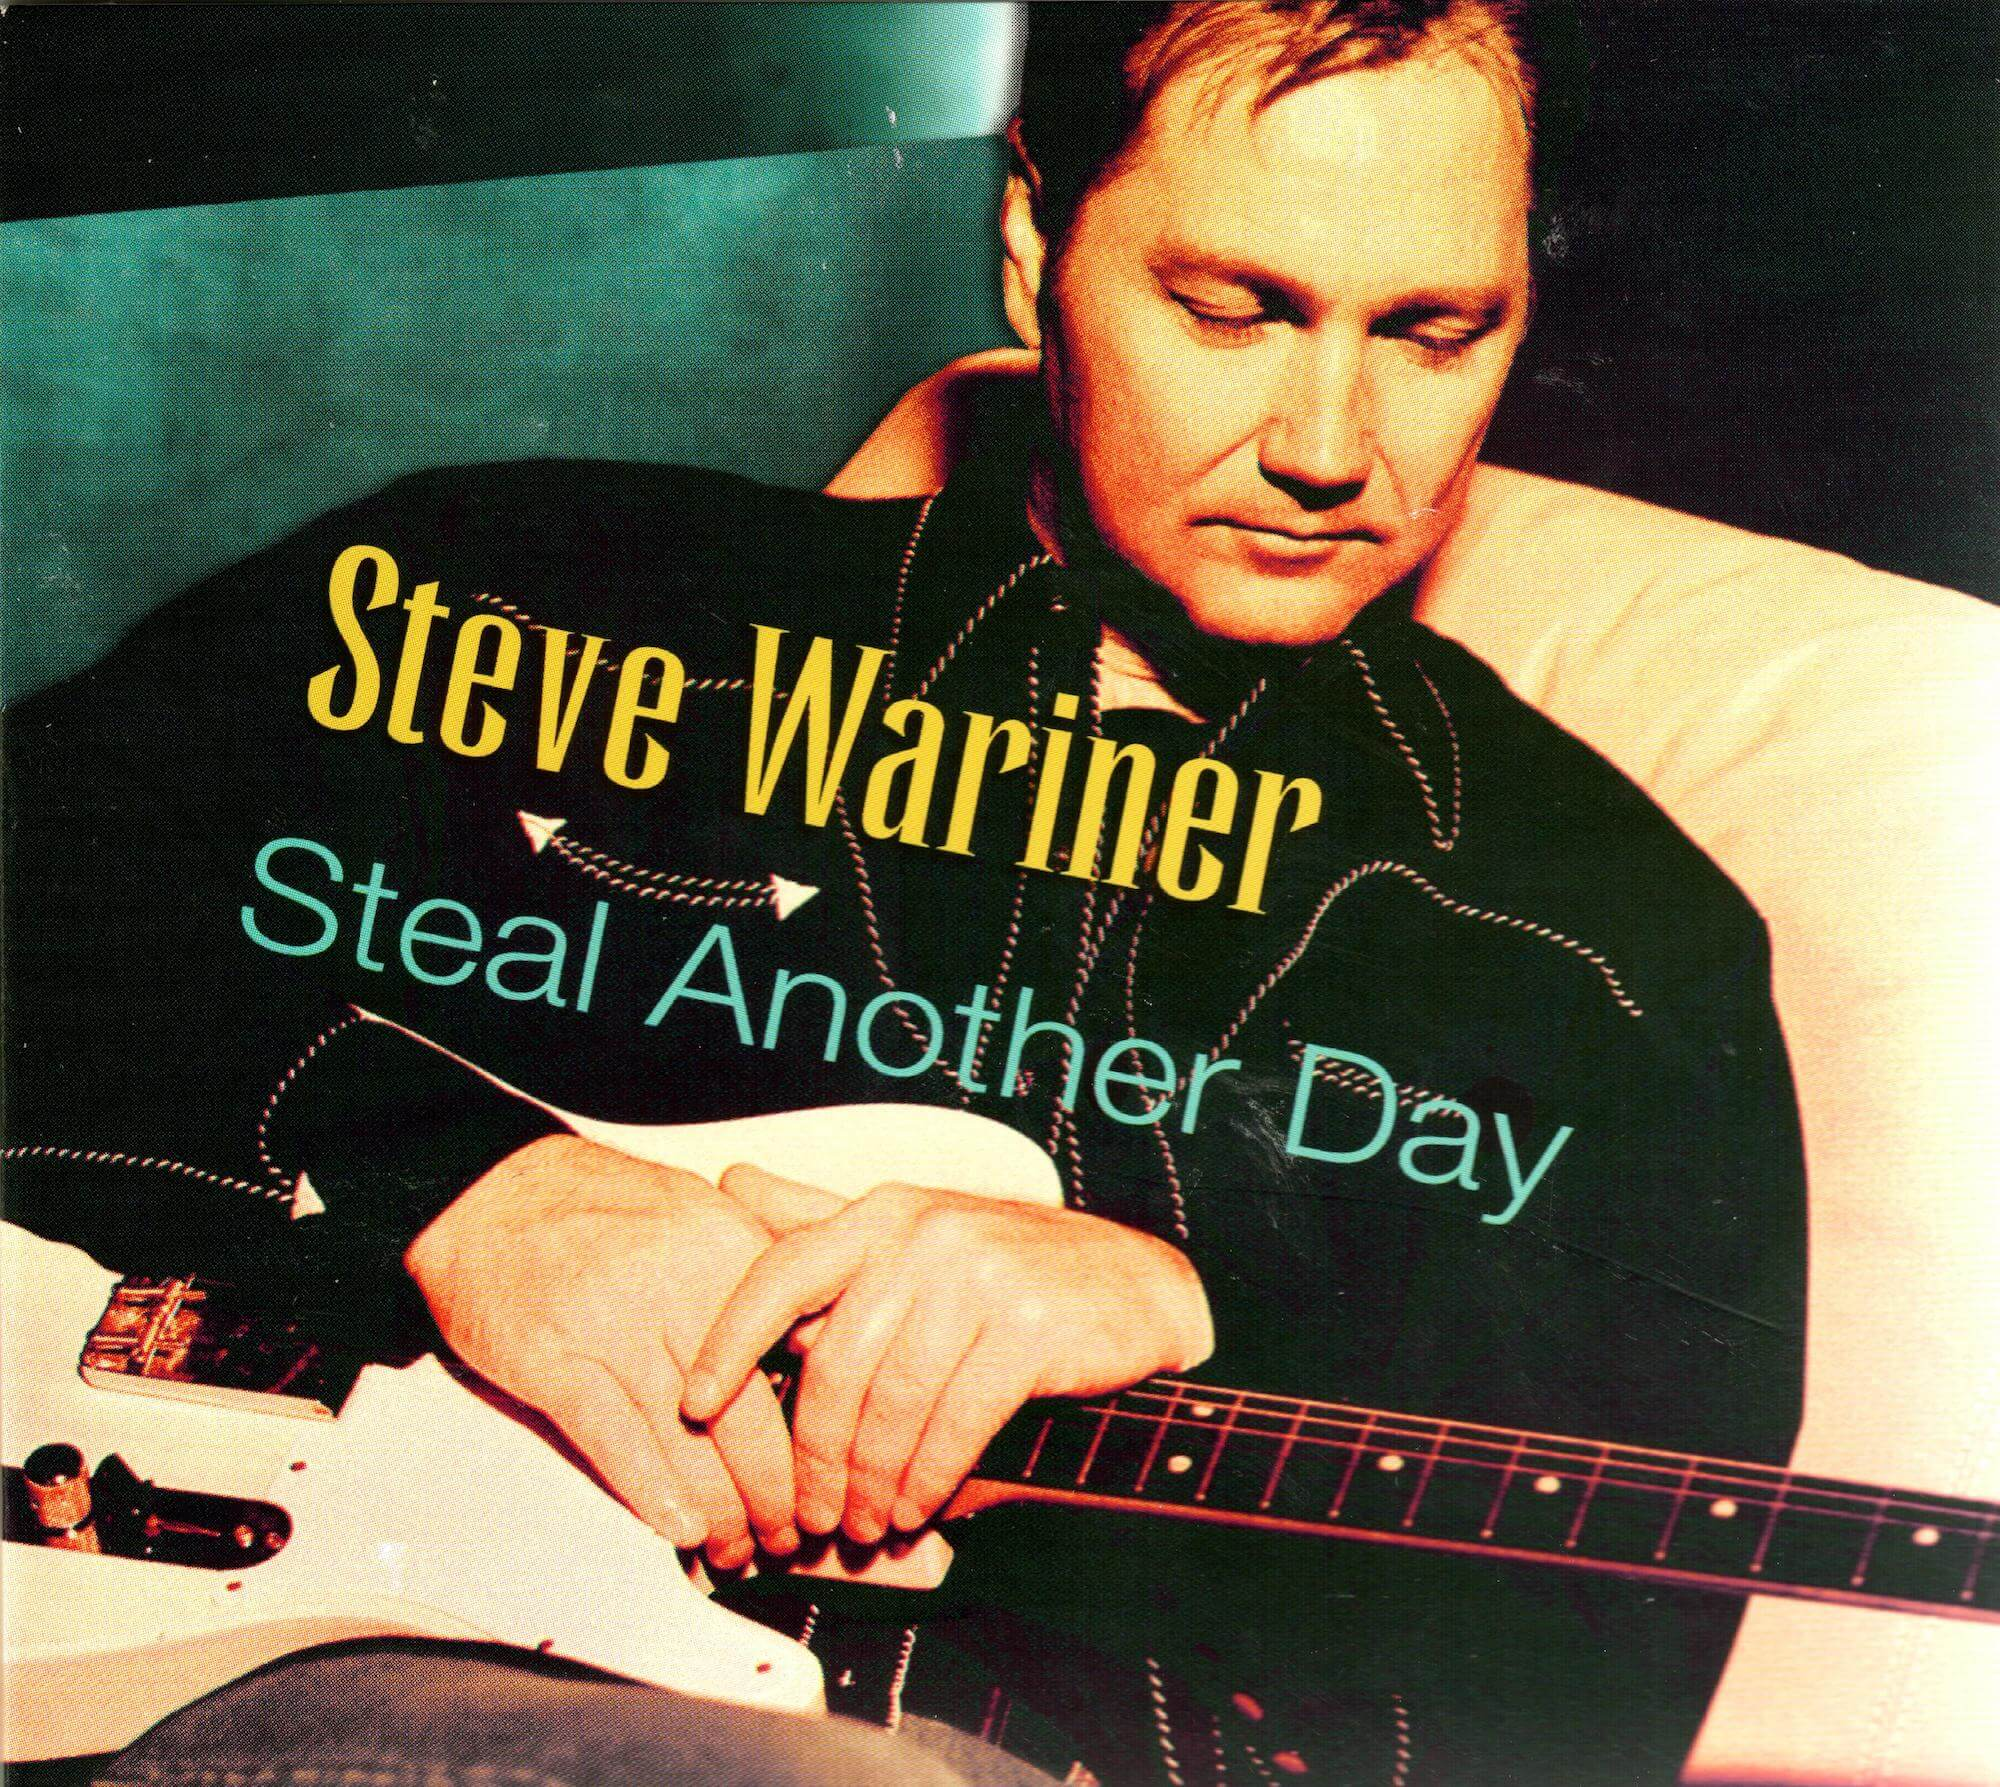 Steal Another Day - Steve Wariner .jpeg